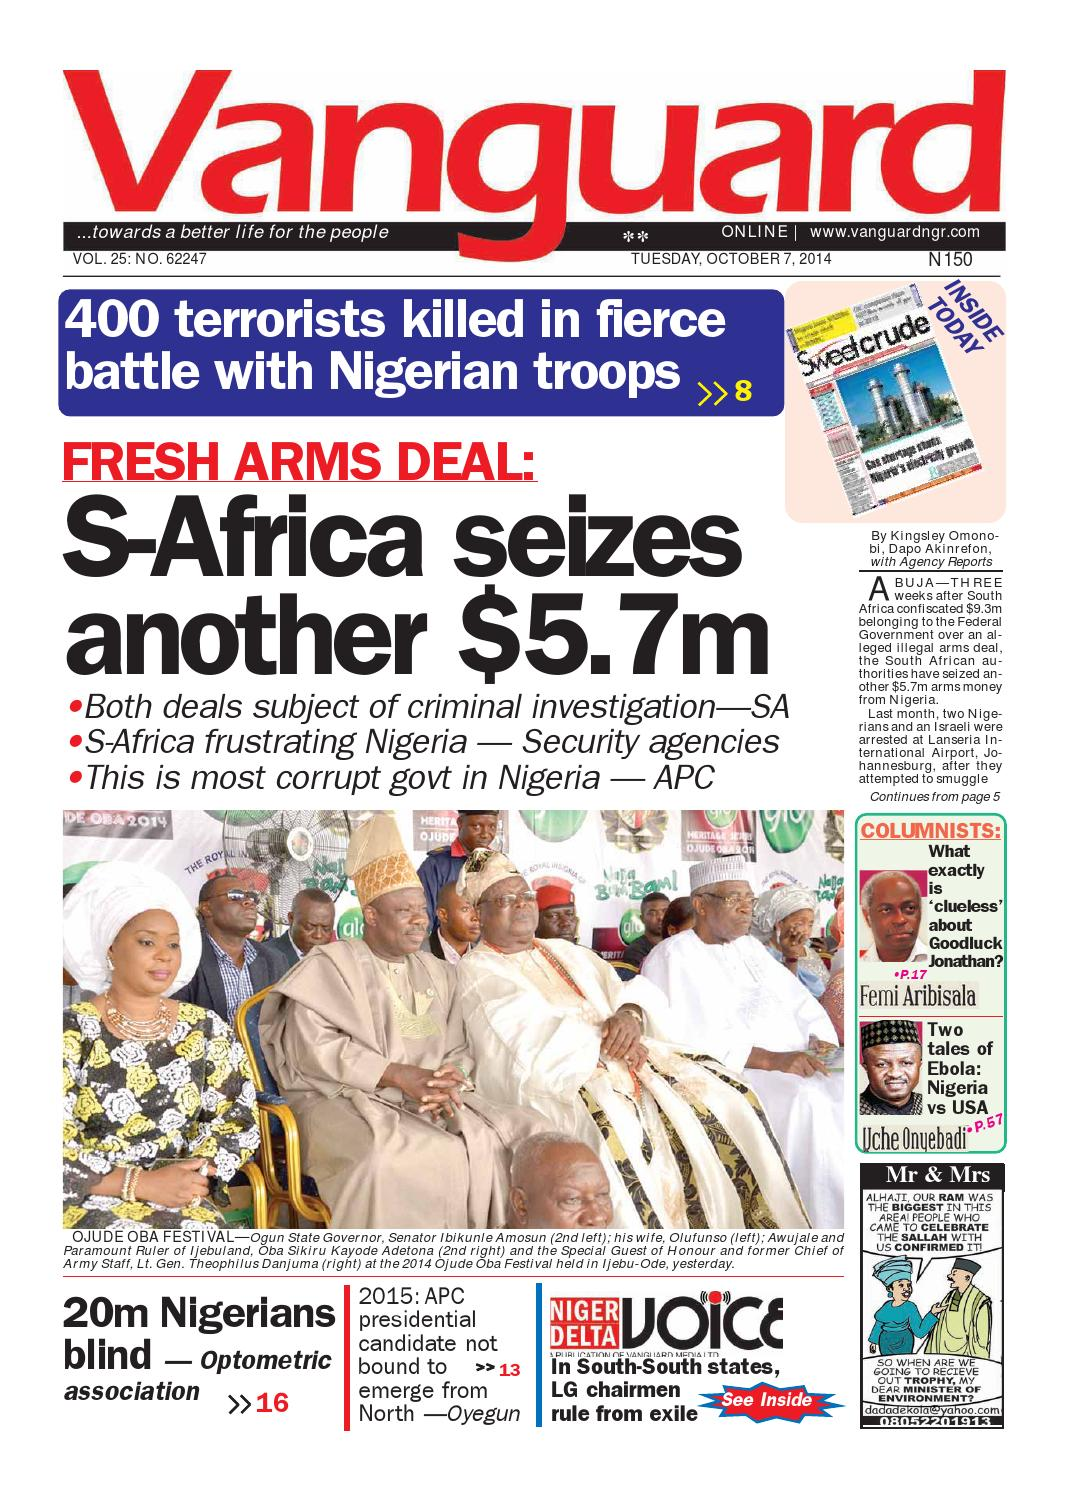 FRESH ARMS DEAL:S-Africa seizes another $5 7m by Vanguard